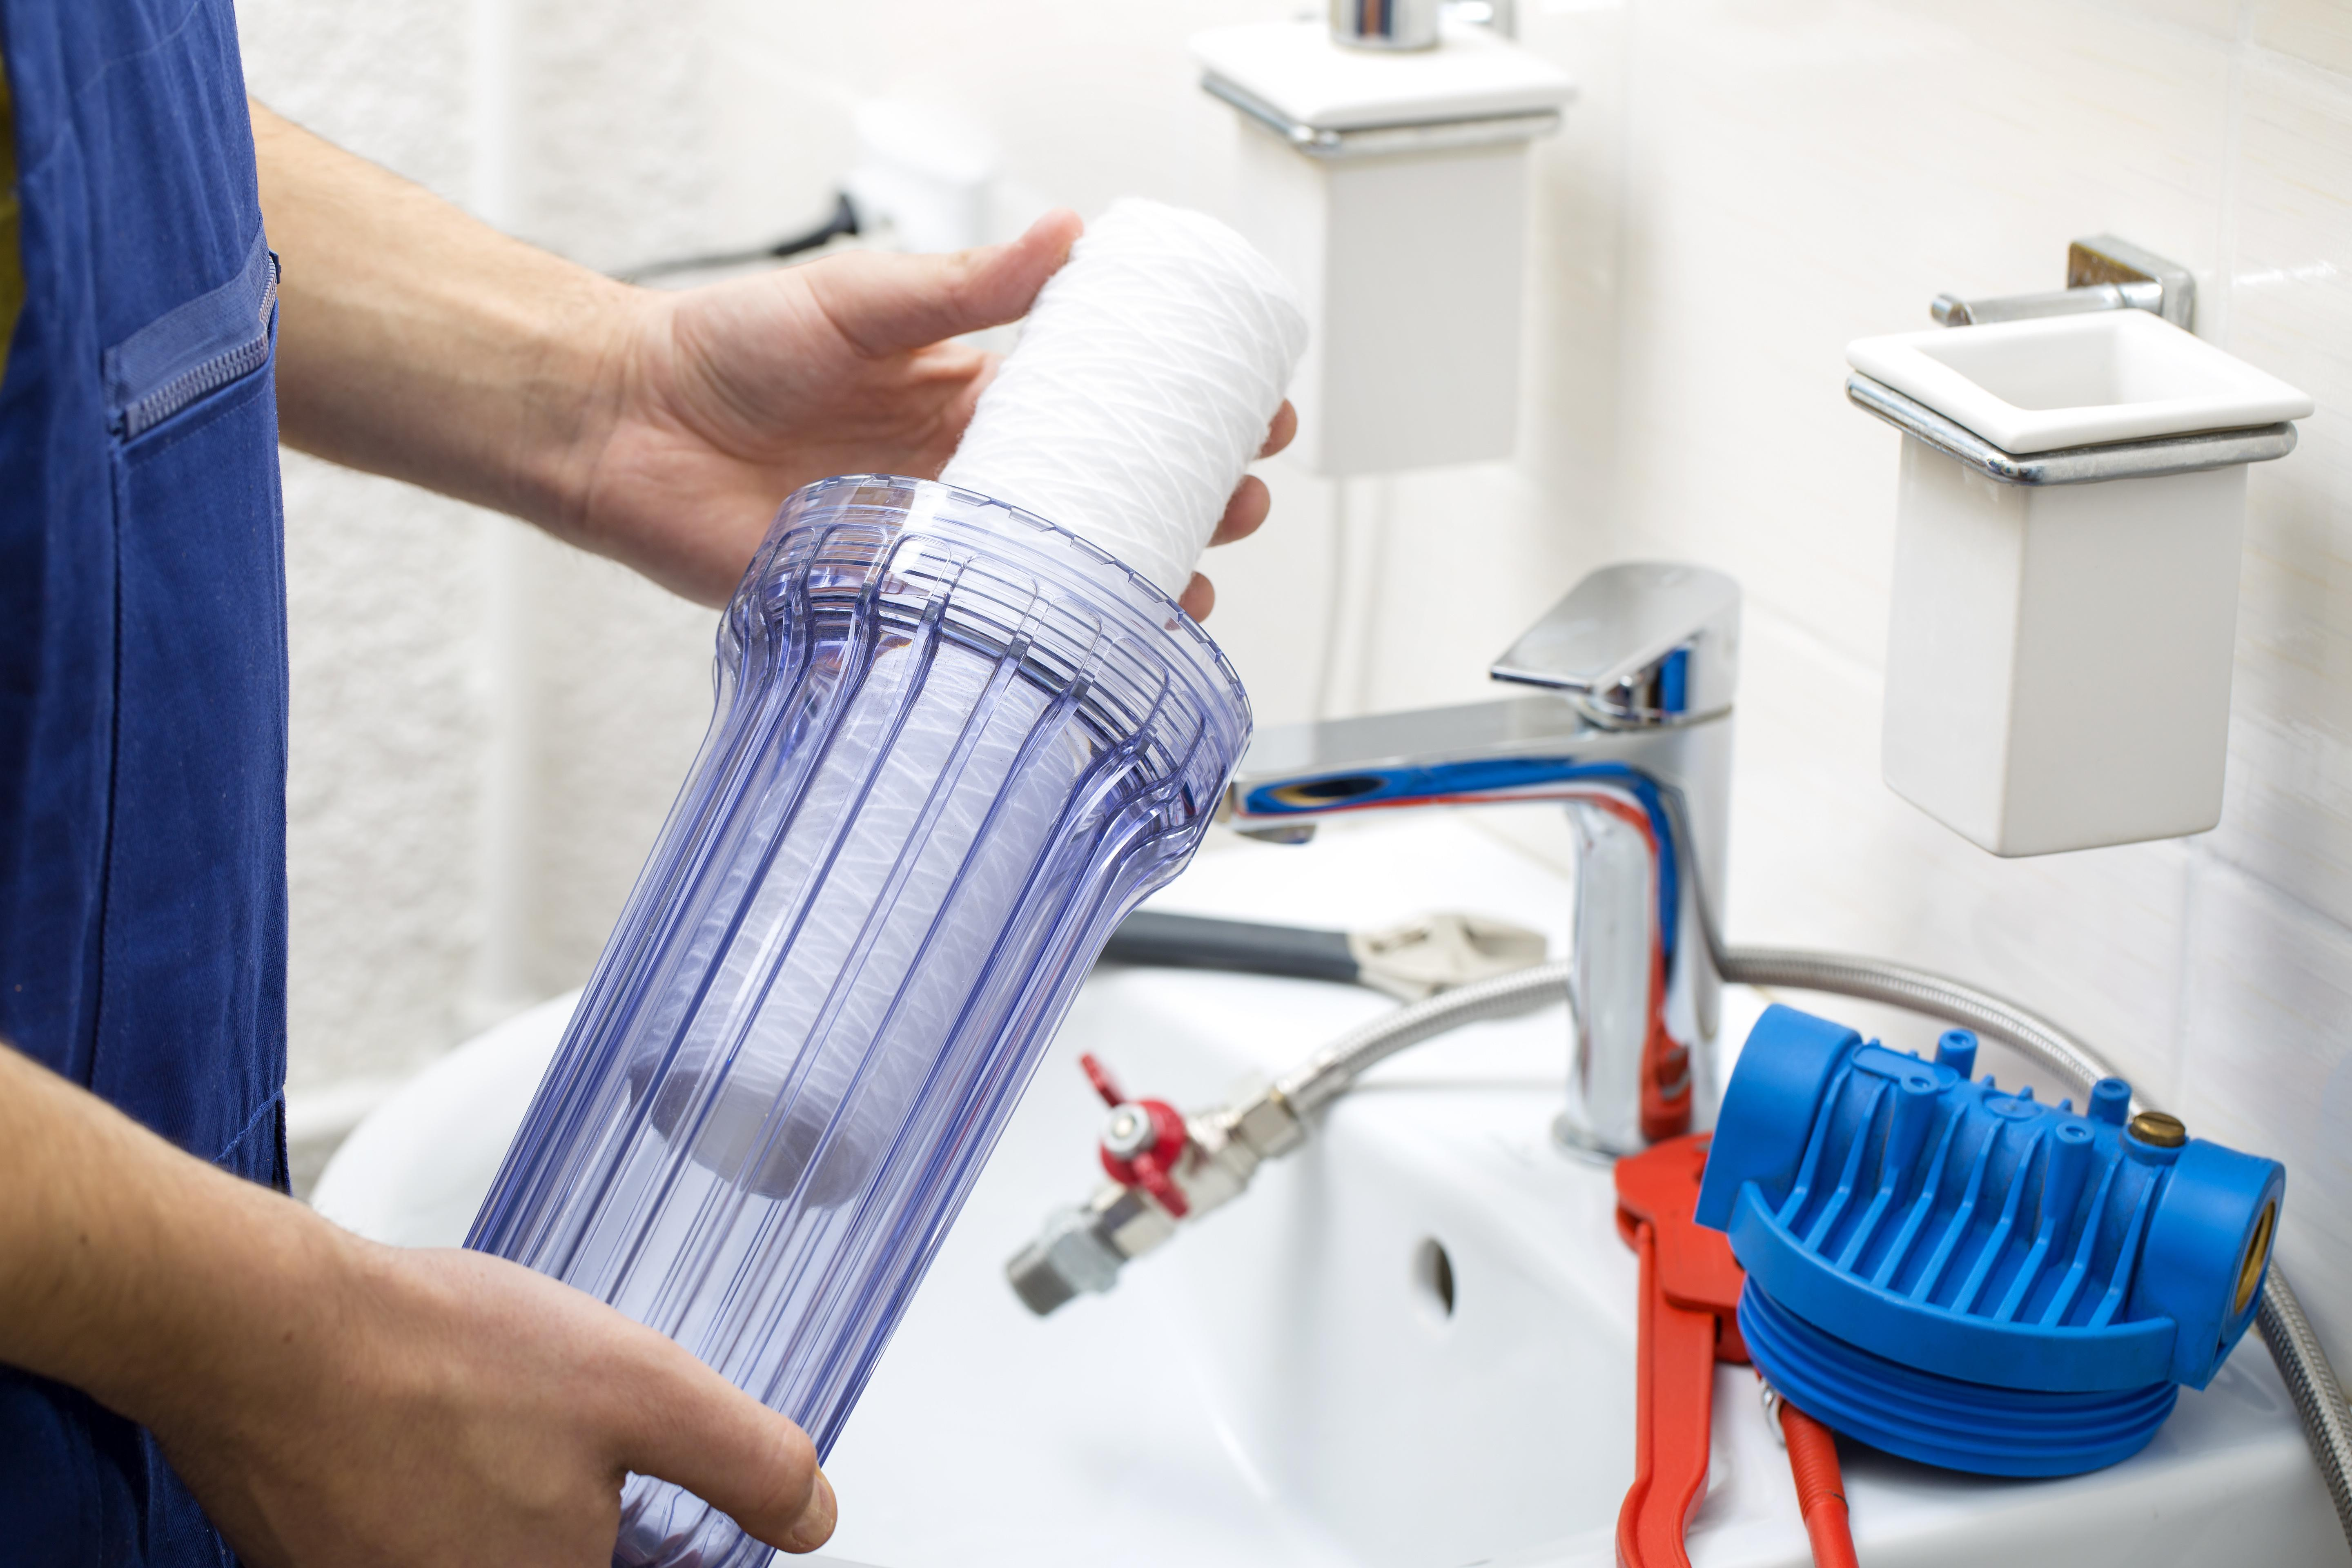 Lately, more and more people have been installing water filters in their home. There are a handful of reasons why...